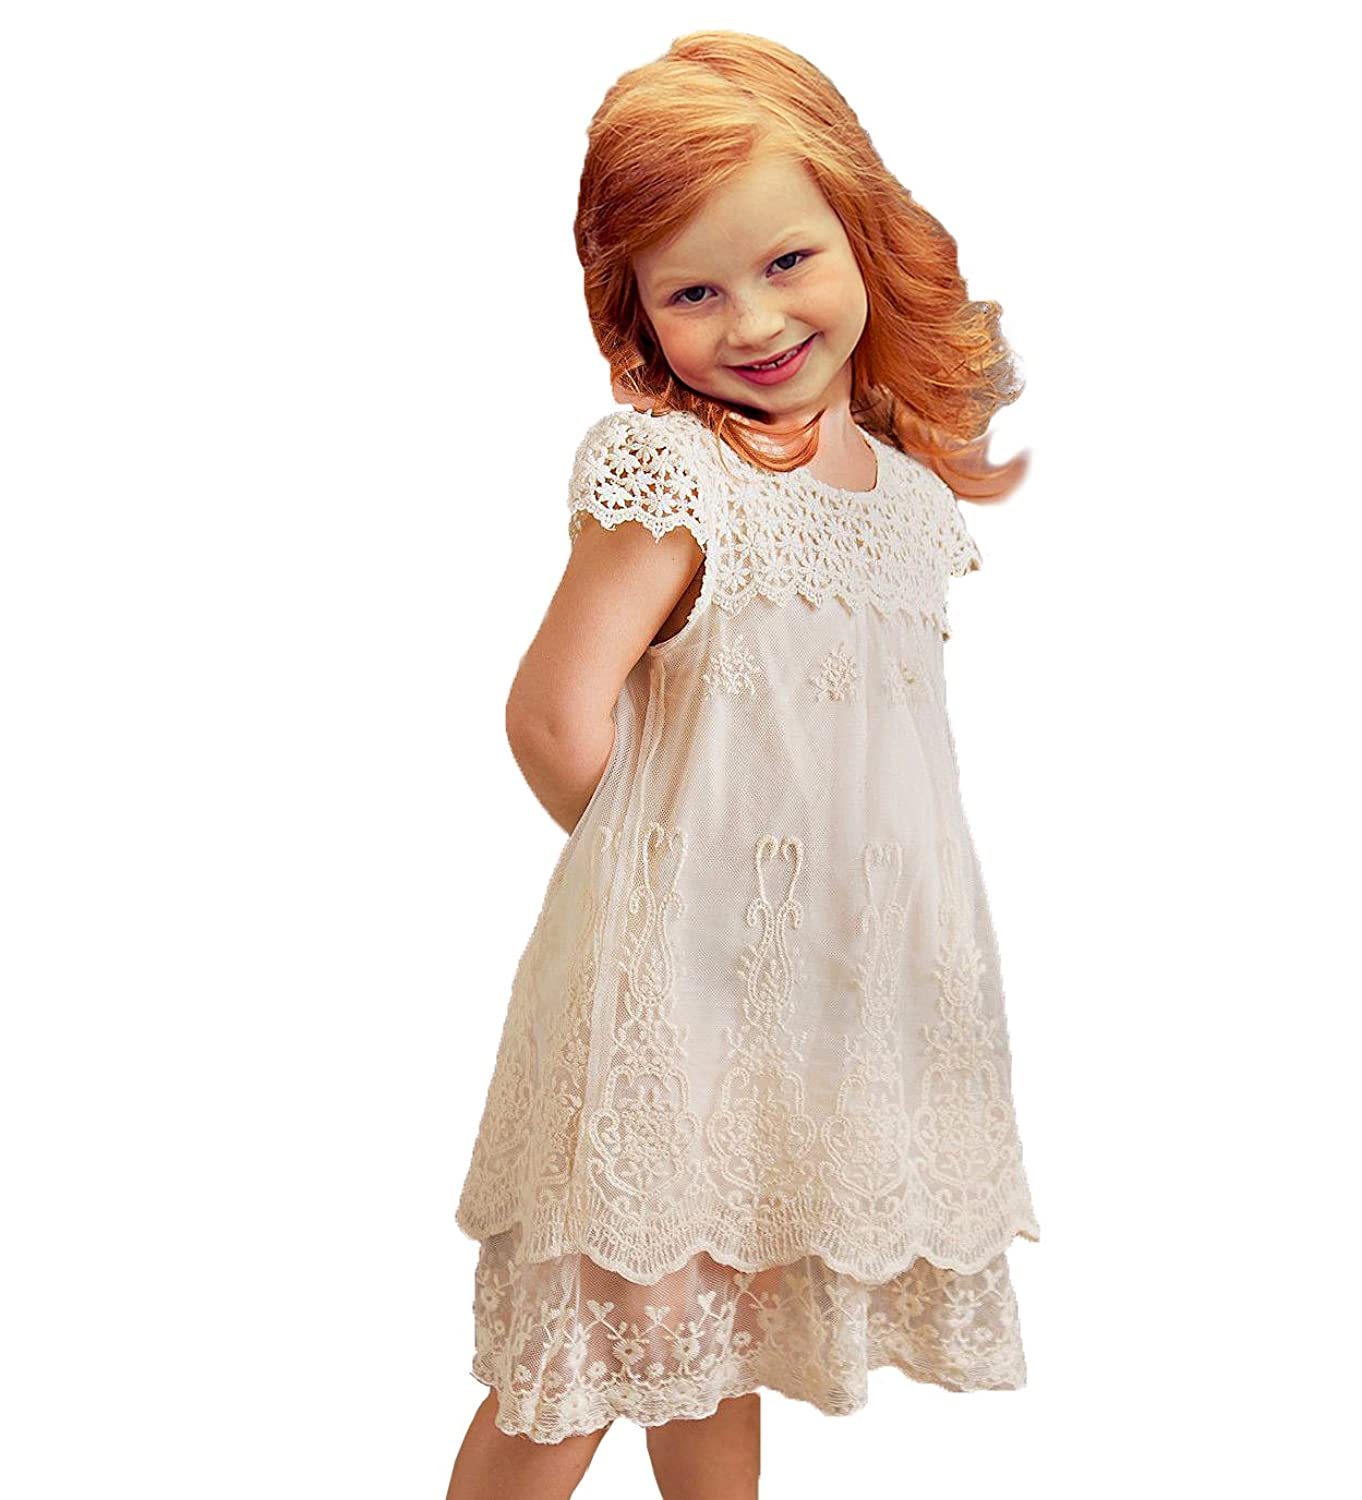 Vintage Style Children's Clothing: Girls, Boys, Baby, Toddler Off White Lace Flower Girl Dress  AT vintagedancer.com